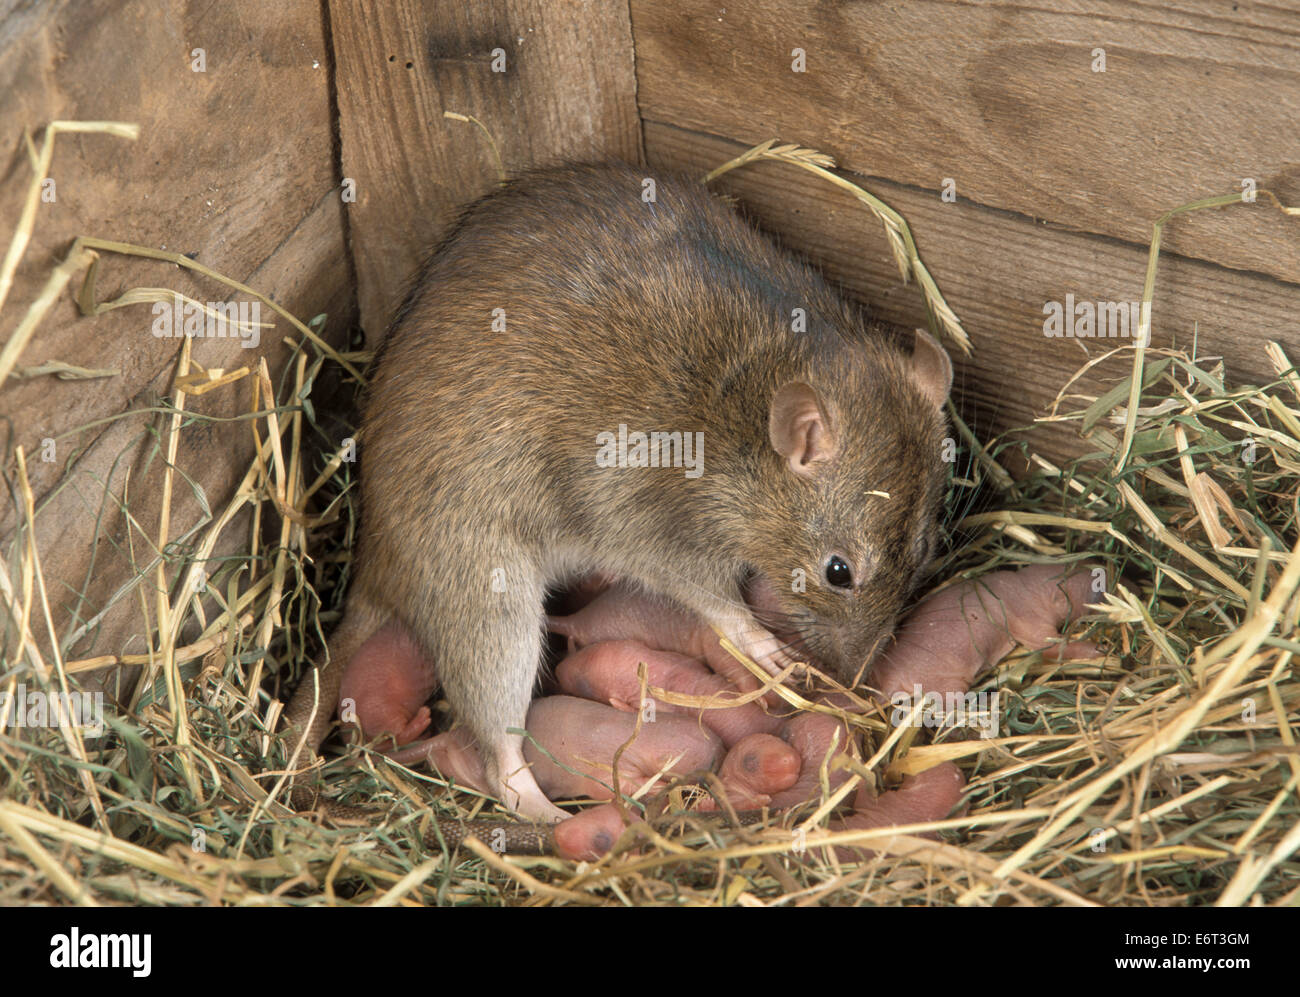 Brown Rat - Rattus norvegicus - Stock Image